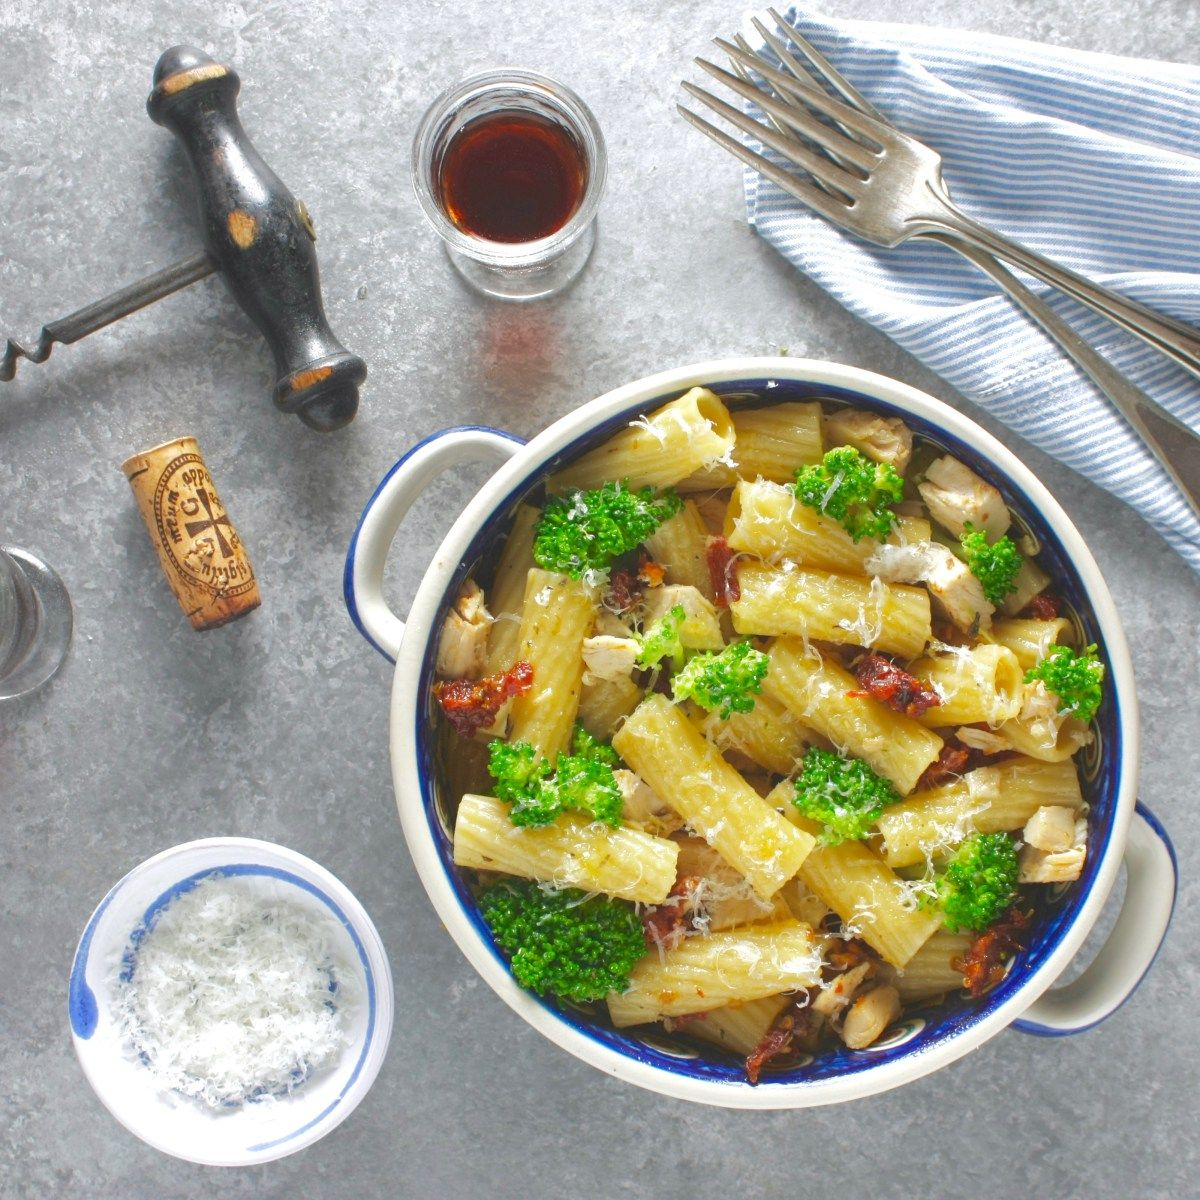 Easy Weeknight Rigatoni with Broccoli and Chicken